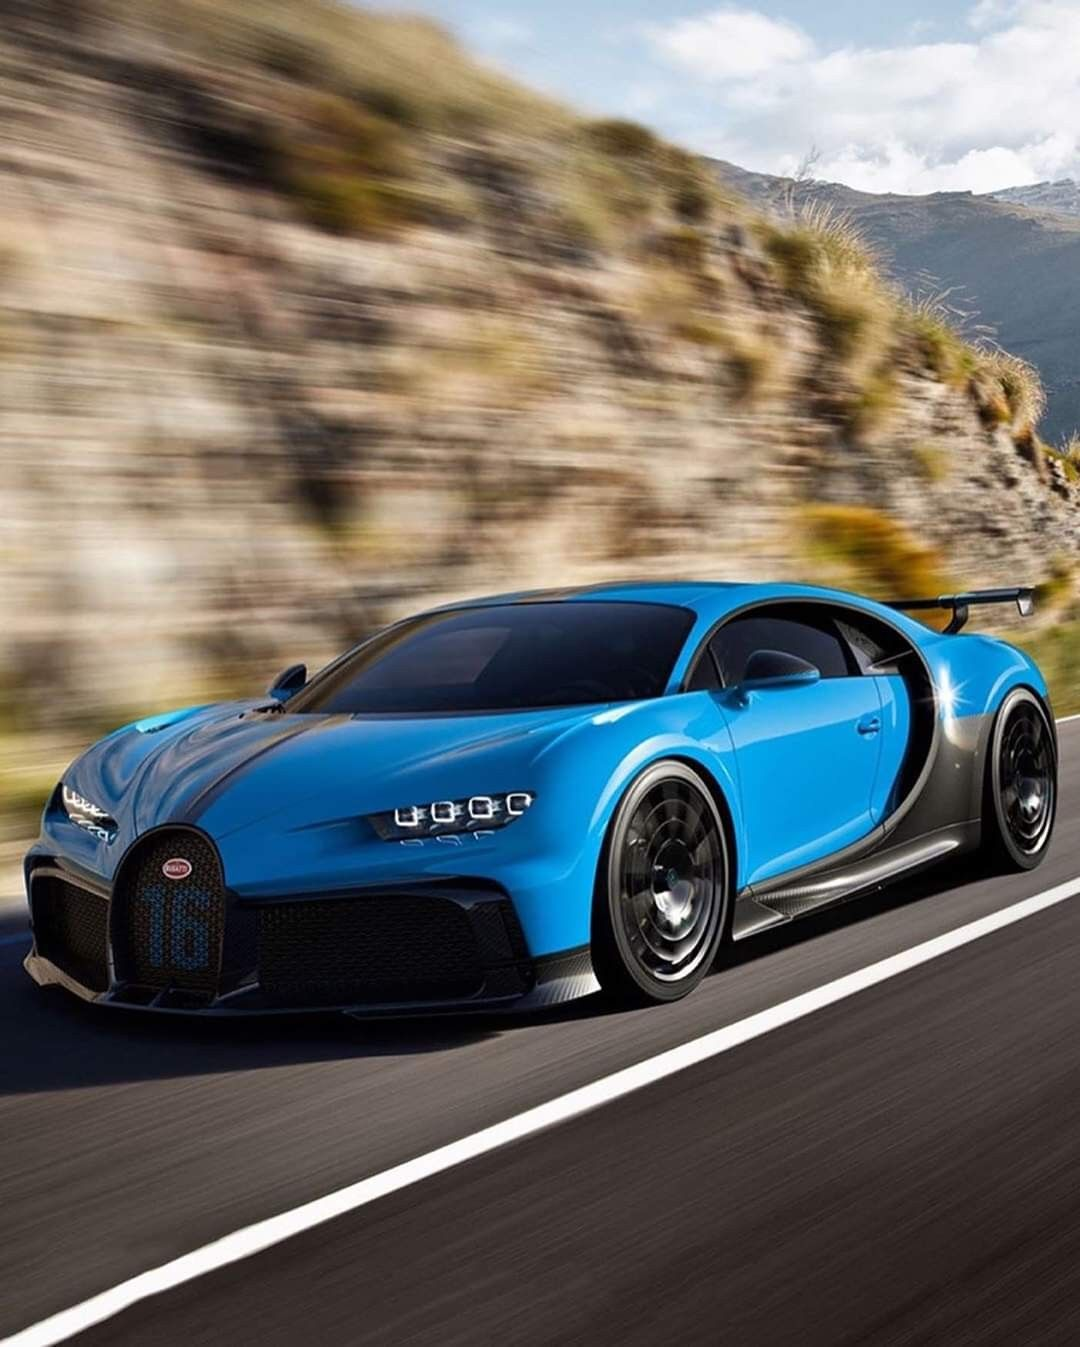 Pin By Adrijordan06 On Carros Esportivos In 2020 Luxury Car Brands Bugatti Sports Cars Luxury